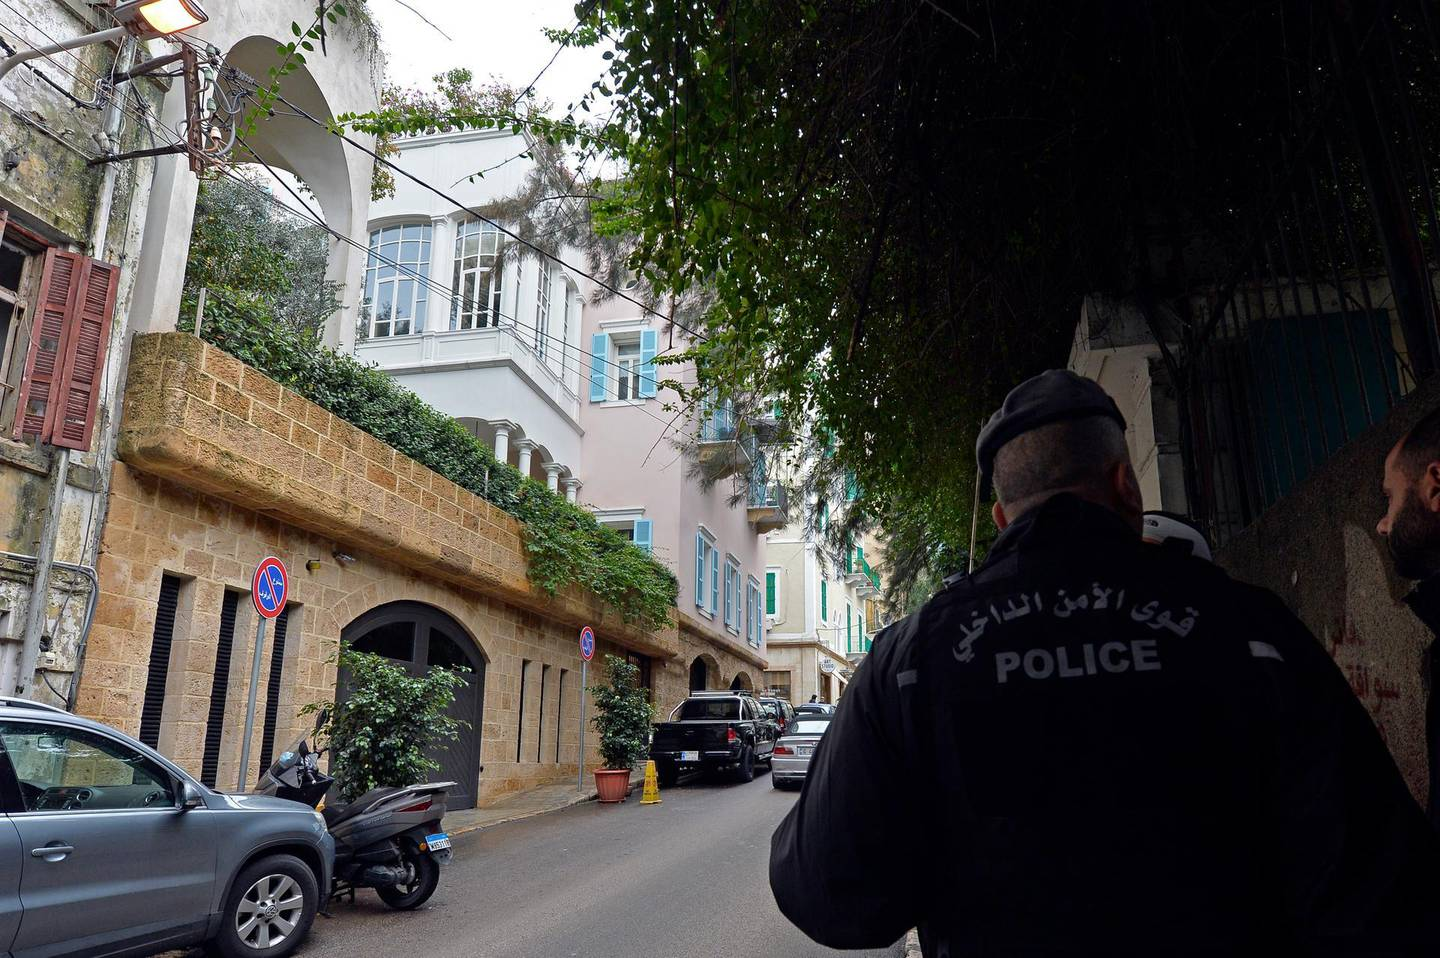 epa08095758 A Lebanese policeman stands guards in front of a house identified by court documents as belonging to former Nissan Motor Co. and Renault SA chairman Carlos Ghosn at the Ashrafieh area in Beirut, Lebanon, 31 December 2019. According to media reports, former Nissan chairman Carlos Ghosn, who was on bail and under surveillance in Tokyo awaiting trial on financial misconduct charges, has arrived in Beirut after he flew in on a private jet via Turkey on 30 December 2019.  EPA/WAEL HAMZEH